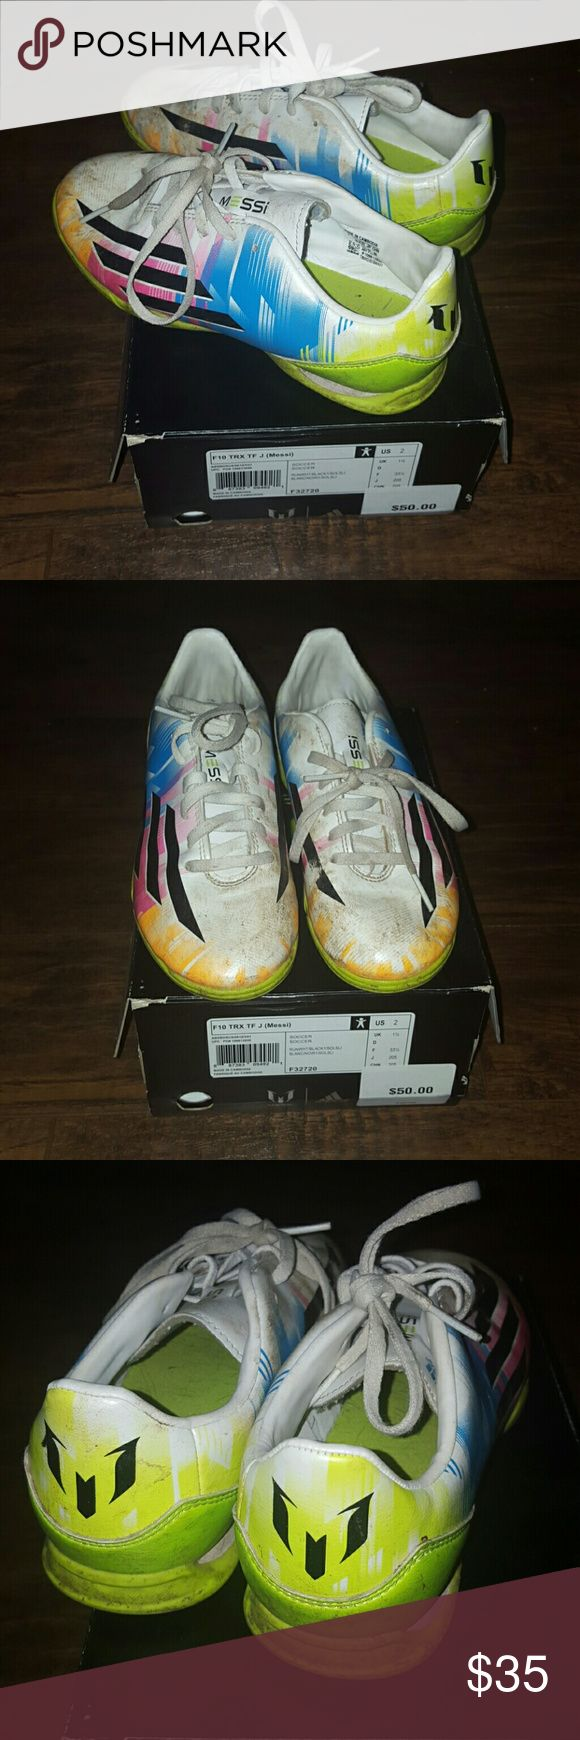 Kids Adidas Messi Soccer Shoes Soccer Shoes for kids  Comes with box Messi for adidas  Excellent used condition Adidas Shoes